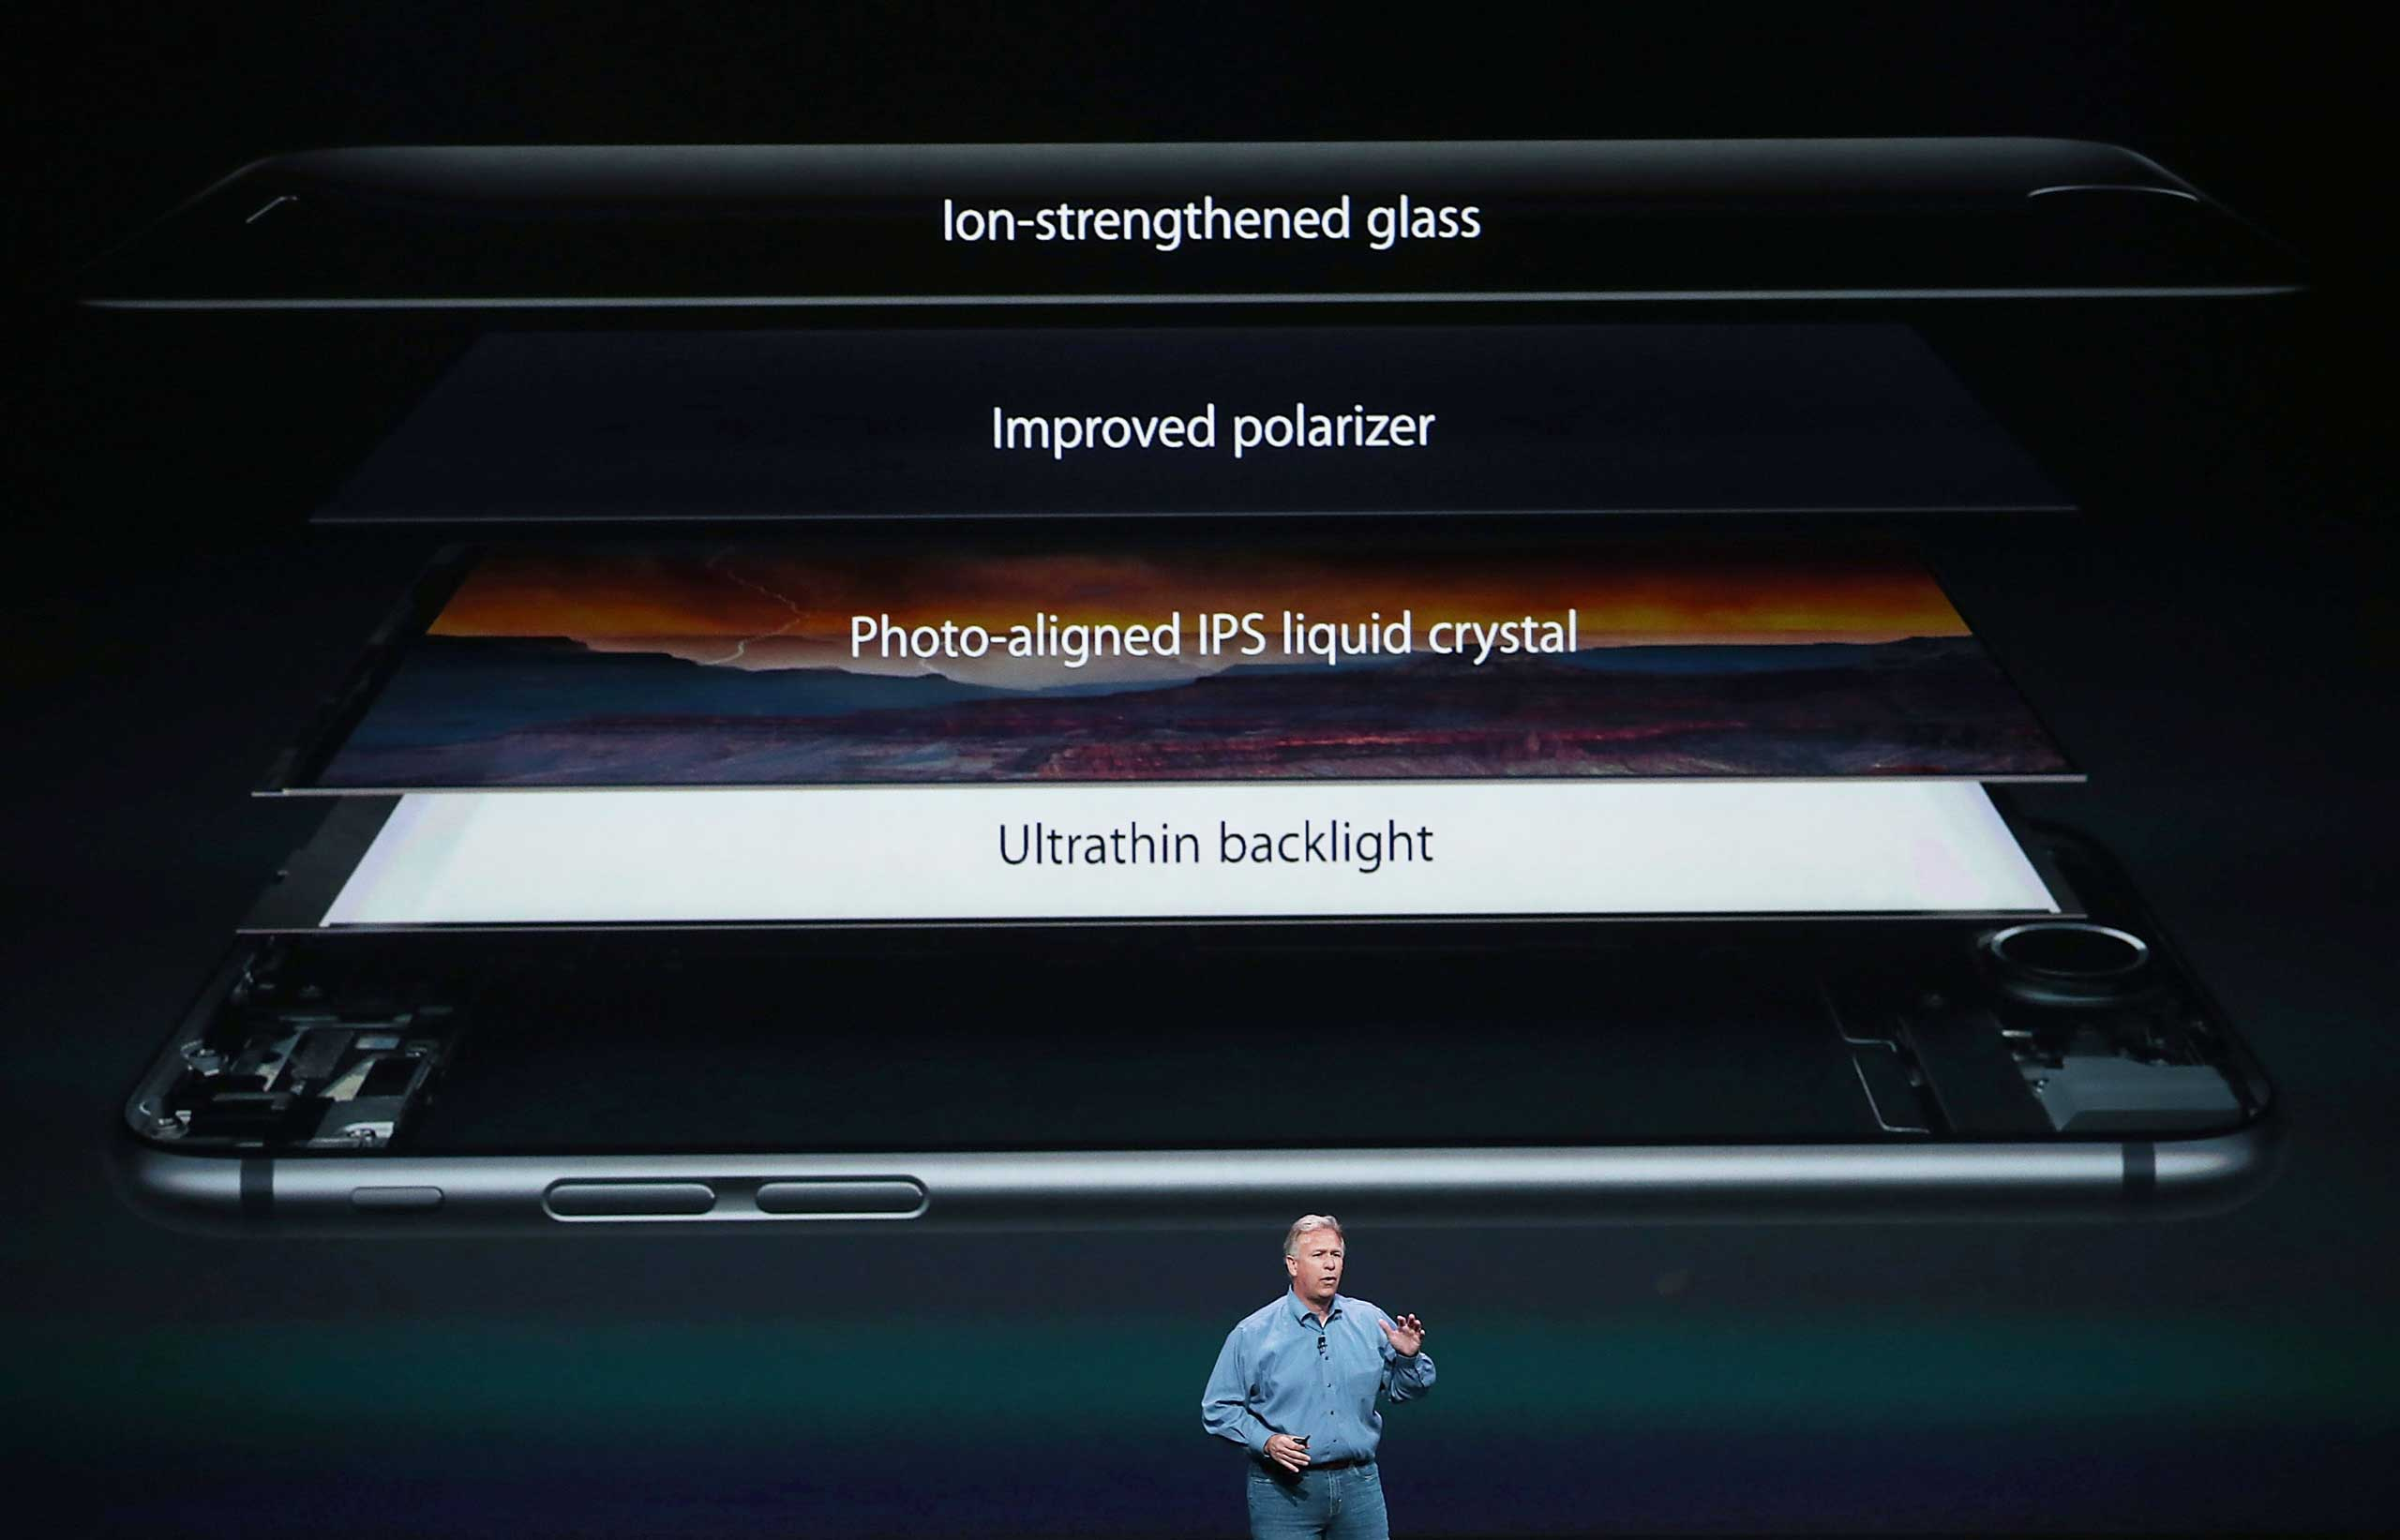 Apple Senior Vice President of Worldwide Marketing Phil Schiller announces the new iPhone 6 during an Apple special event at the Flint Center for the Performing Arts on September 9, 2014 in Cupertino, California.